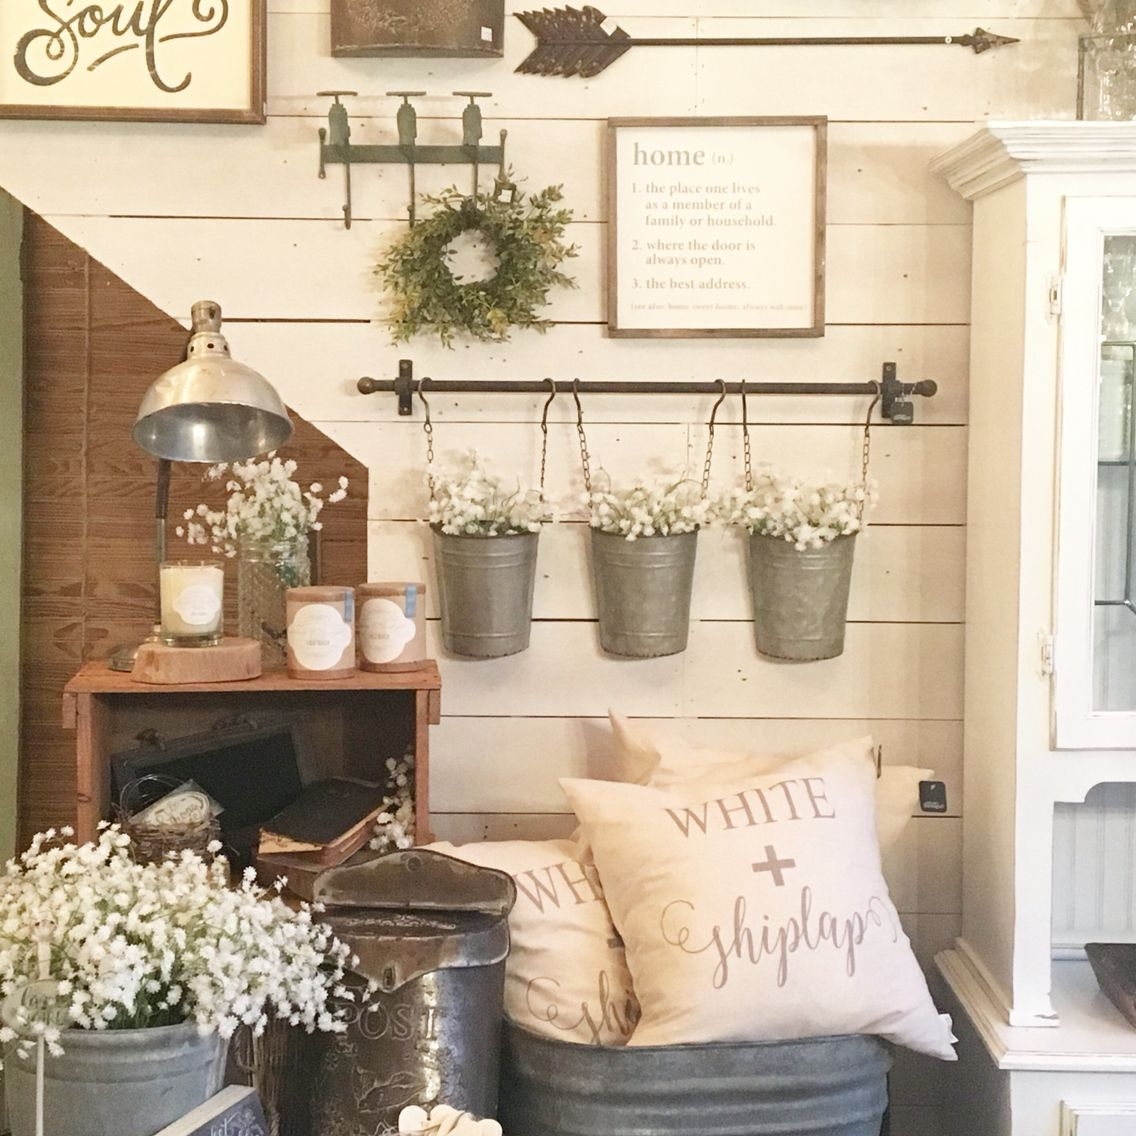 country kitchen wall decor how to plan a remodel collage with reclaimed metal farm fixtures decorating style discover ideas about rustic